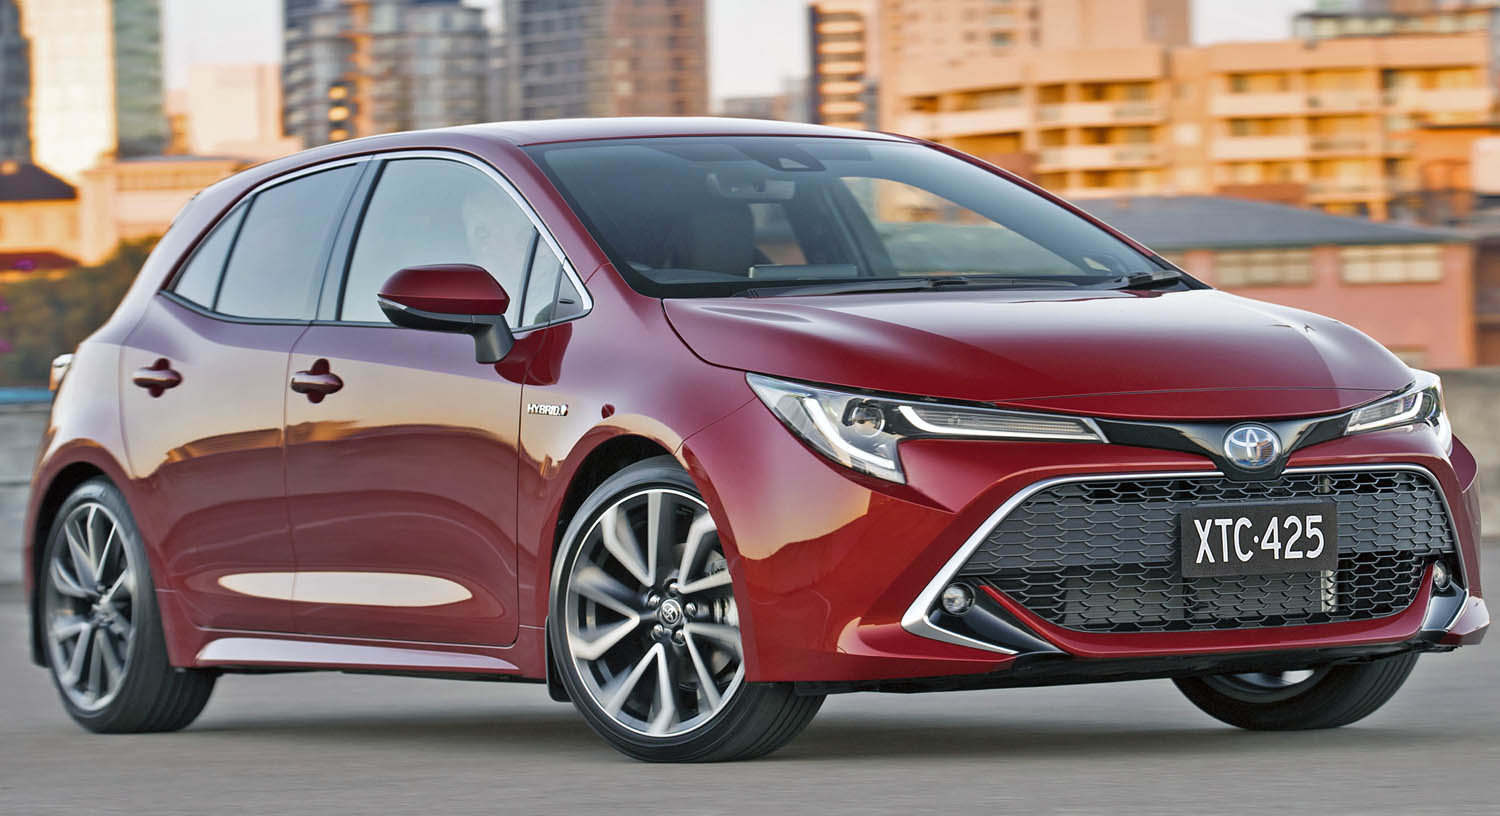 Hybrid Car Sales Account for 16% of Toyota 2020 Sales, Up by 23% Year Over Year